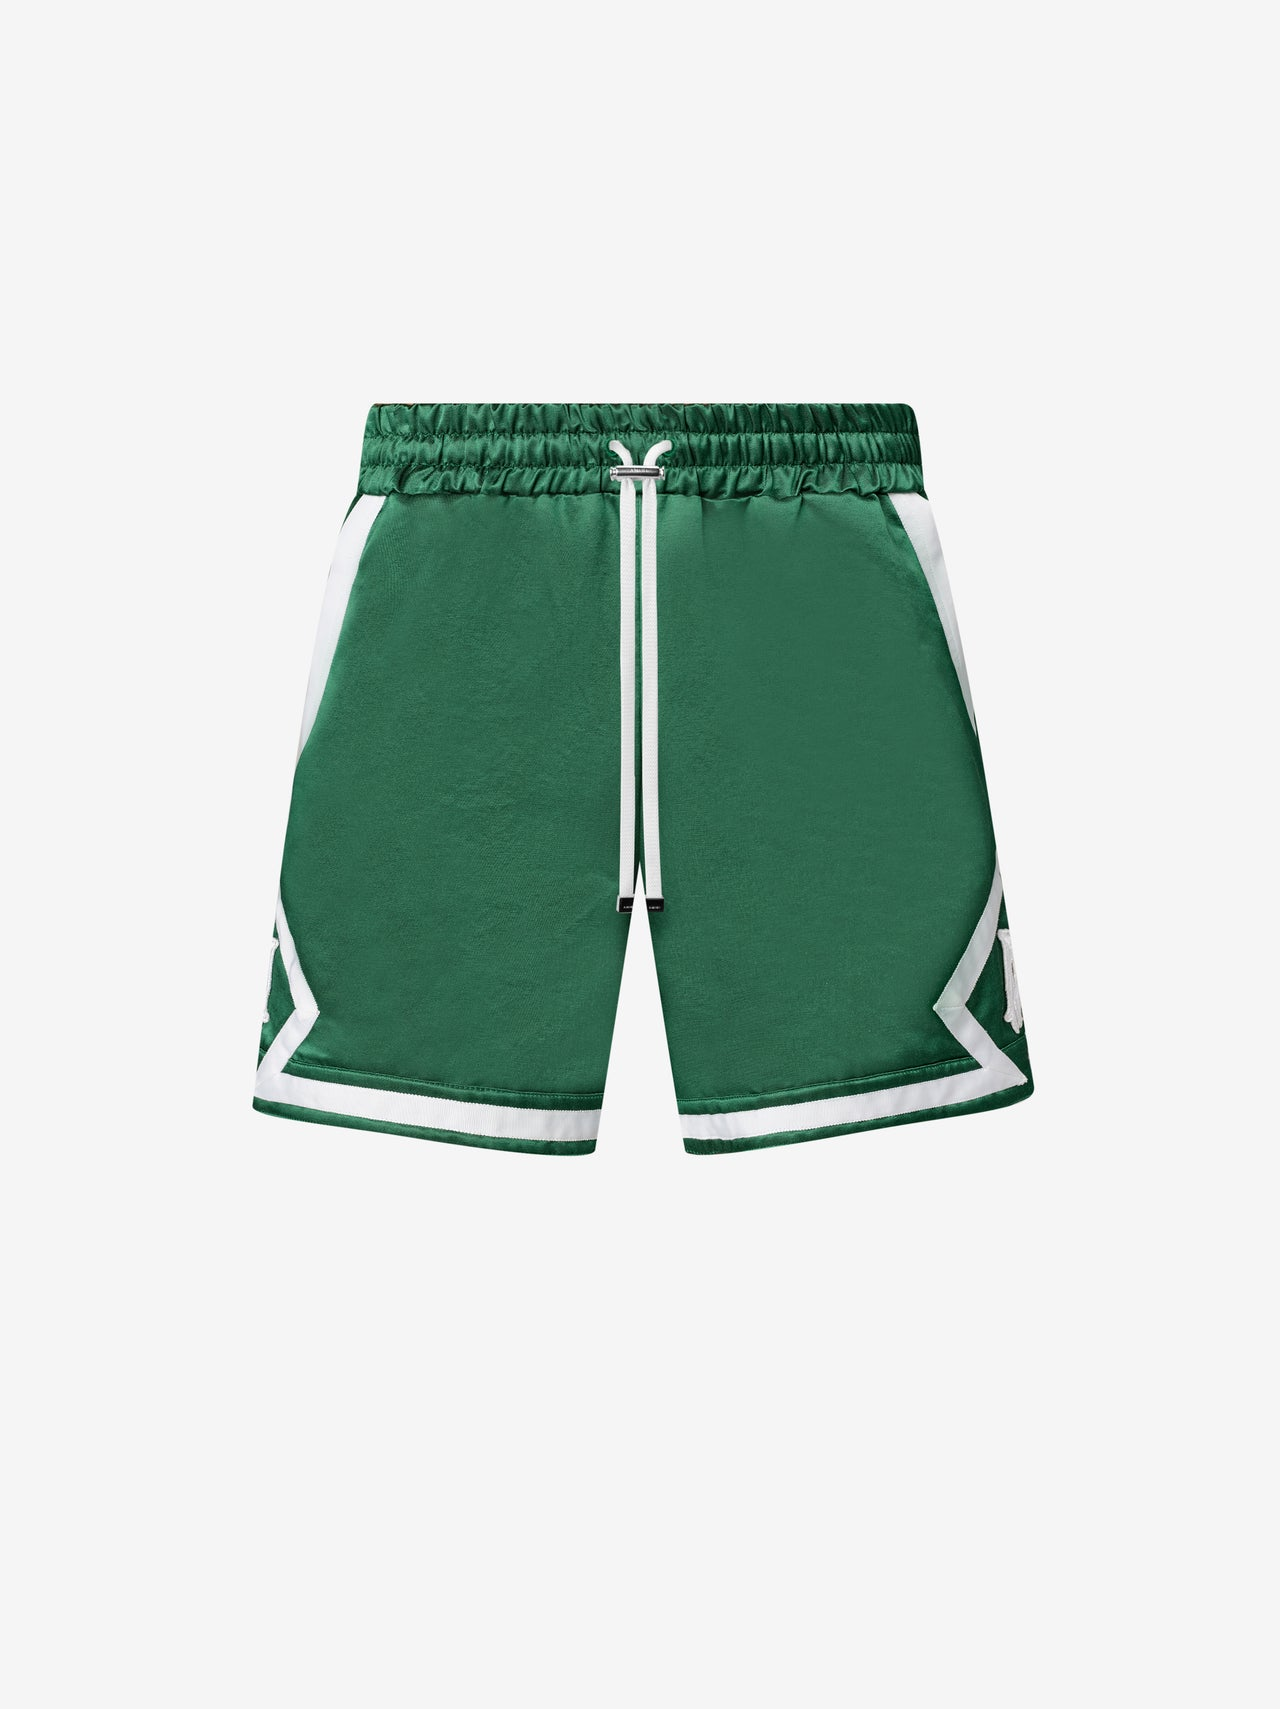 DRAWSTRING BOXING SHORT - TENNIS GREEN / WHITE